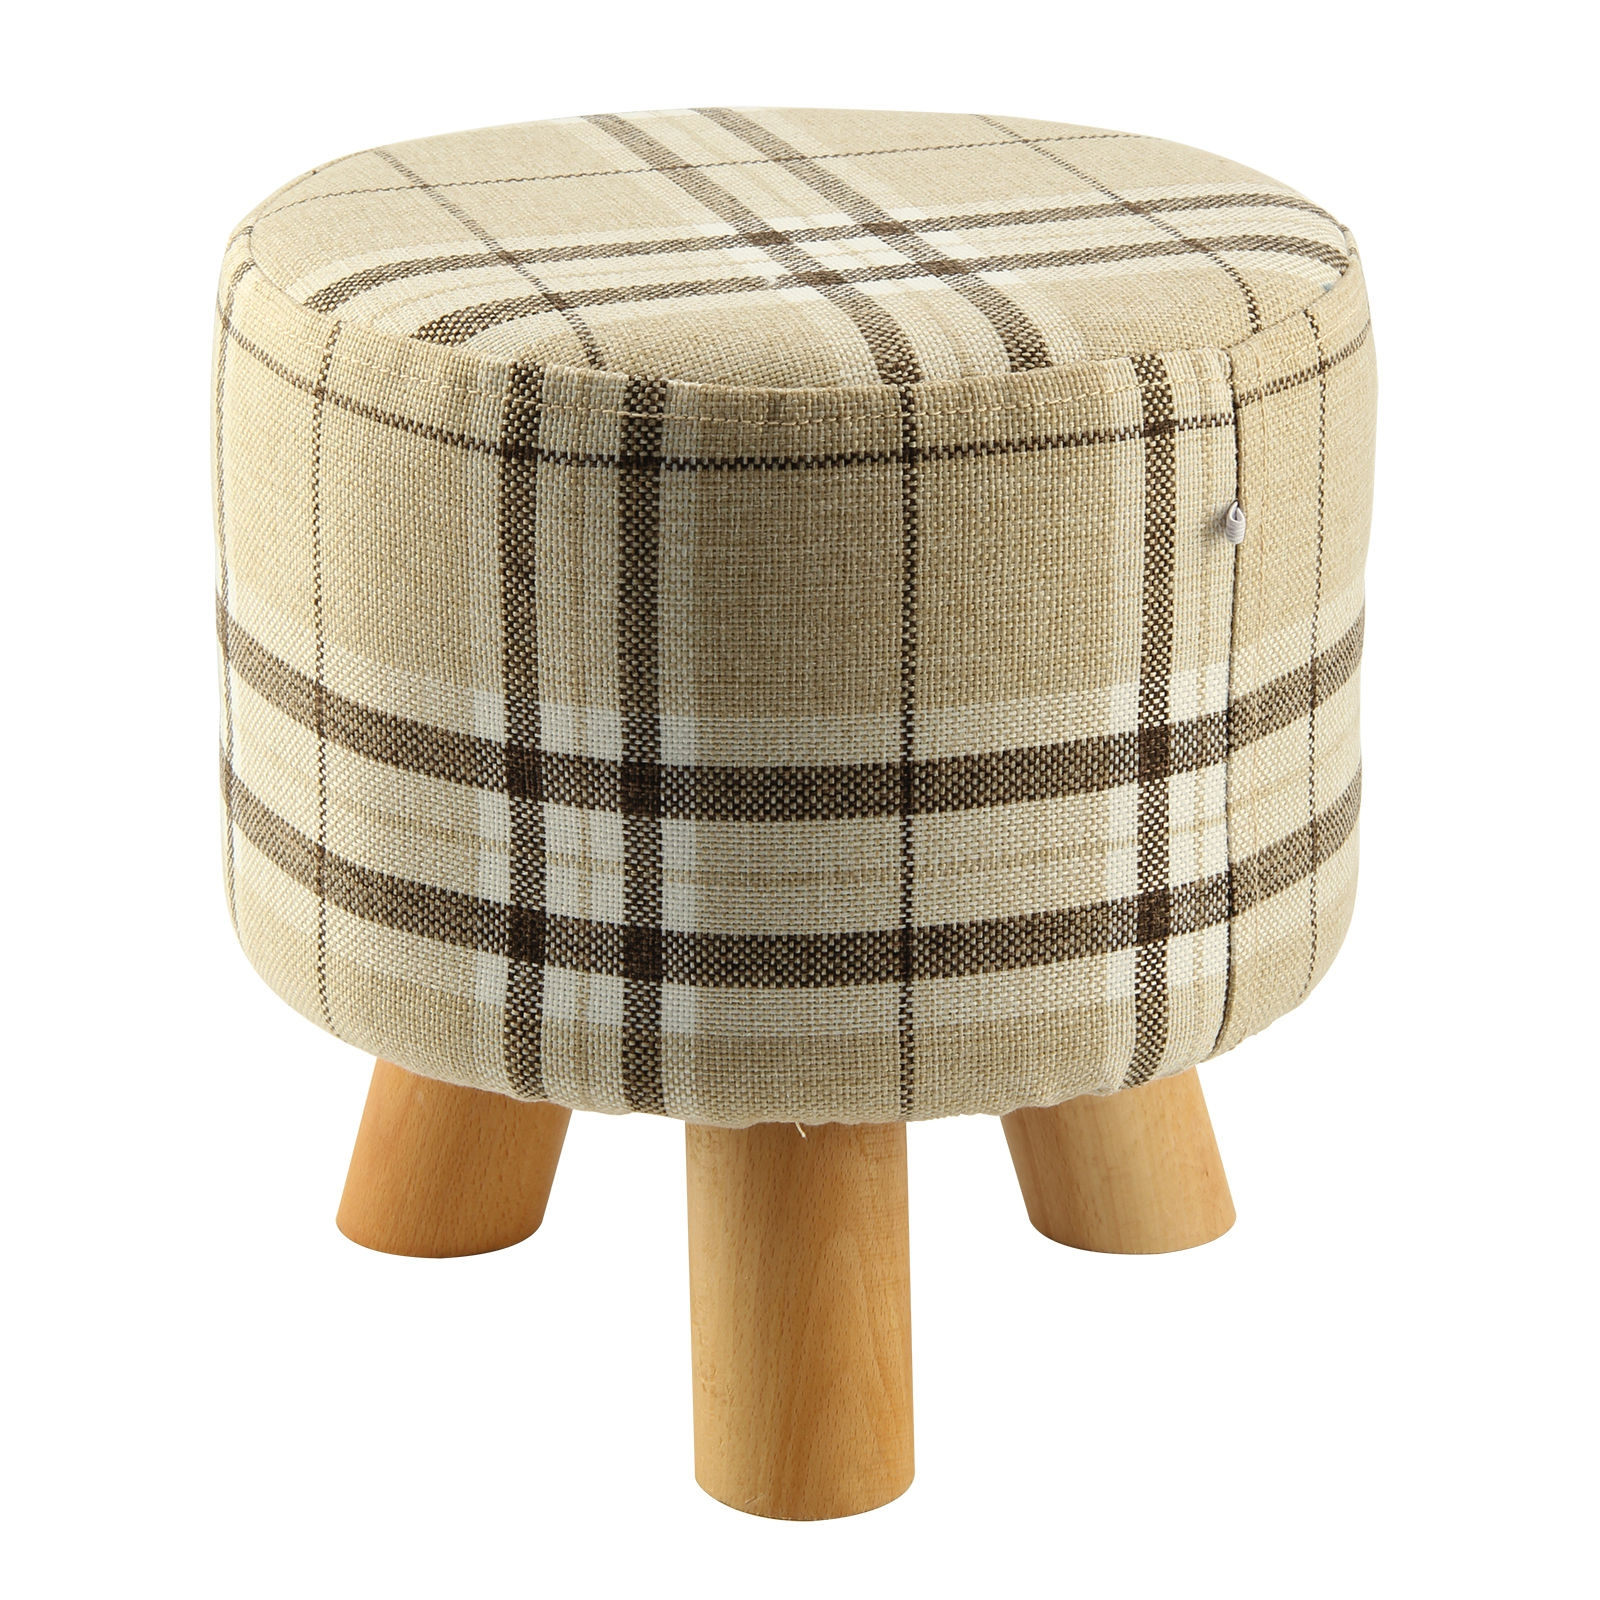 Online Get Cheap Round Footstool Aliexpress Alibaba Group With Regard To Cheap Footstools And Pouffes (Image 14 of 15)